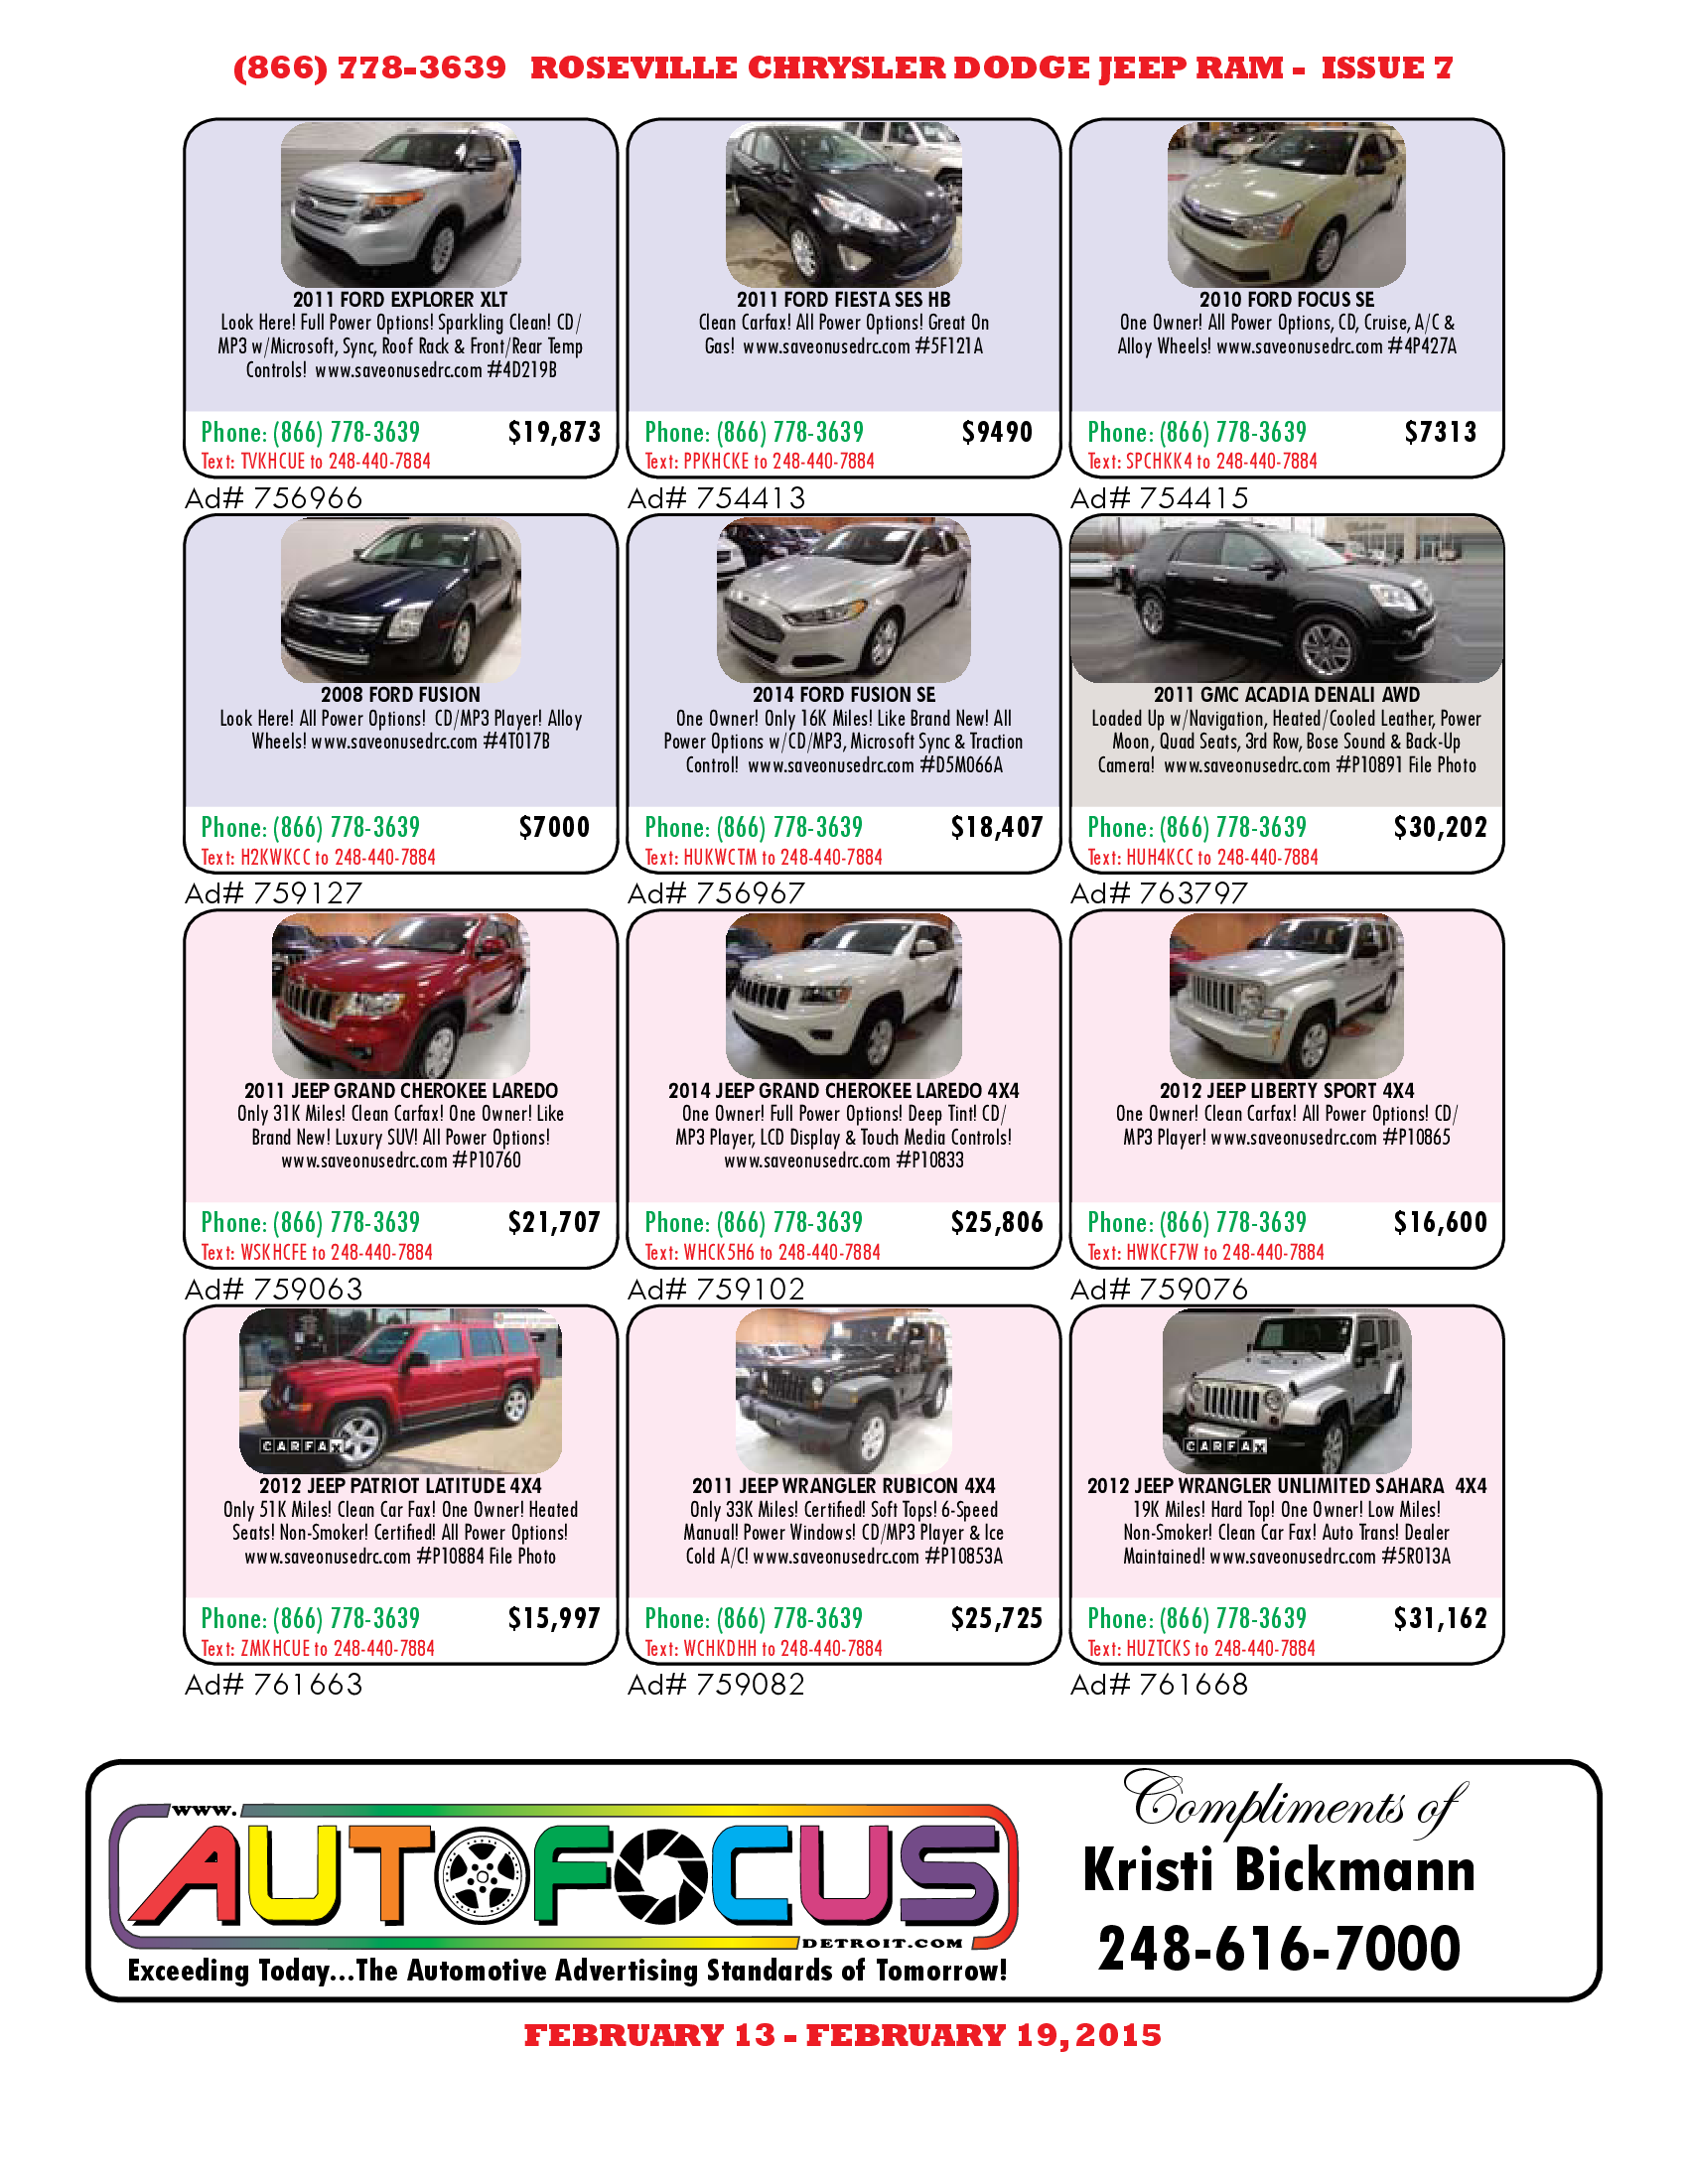 Check Out Our Used Car Sale Going On Until Feb 19!